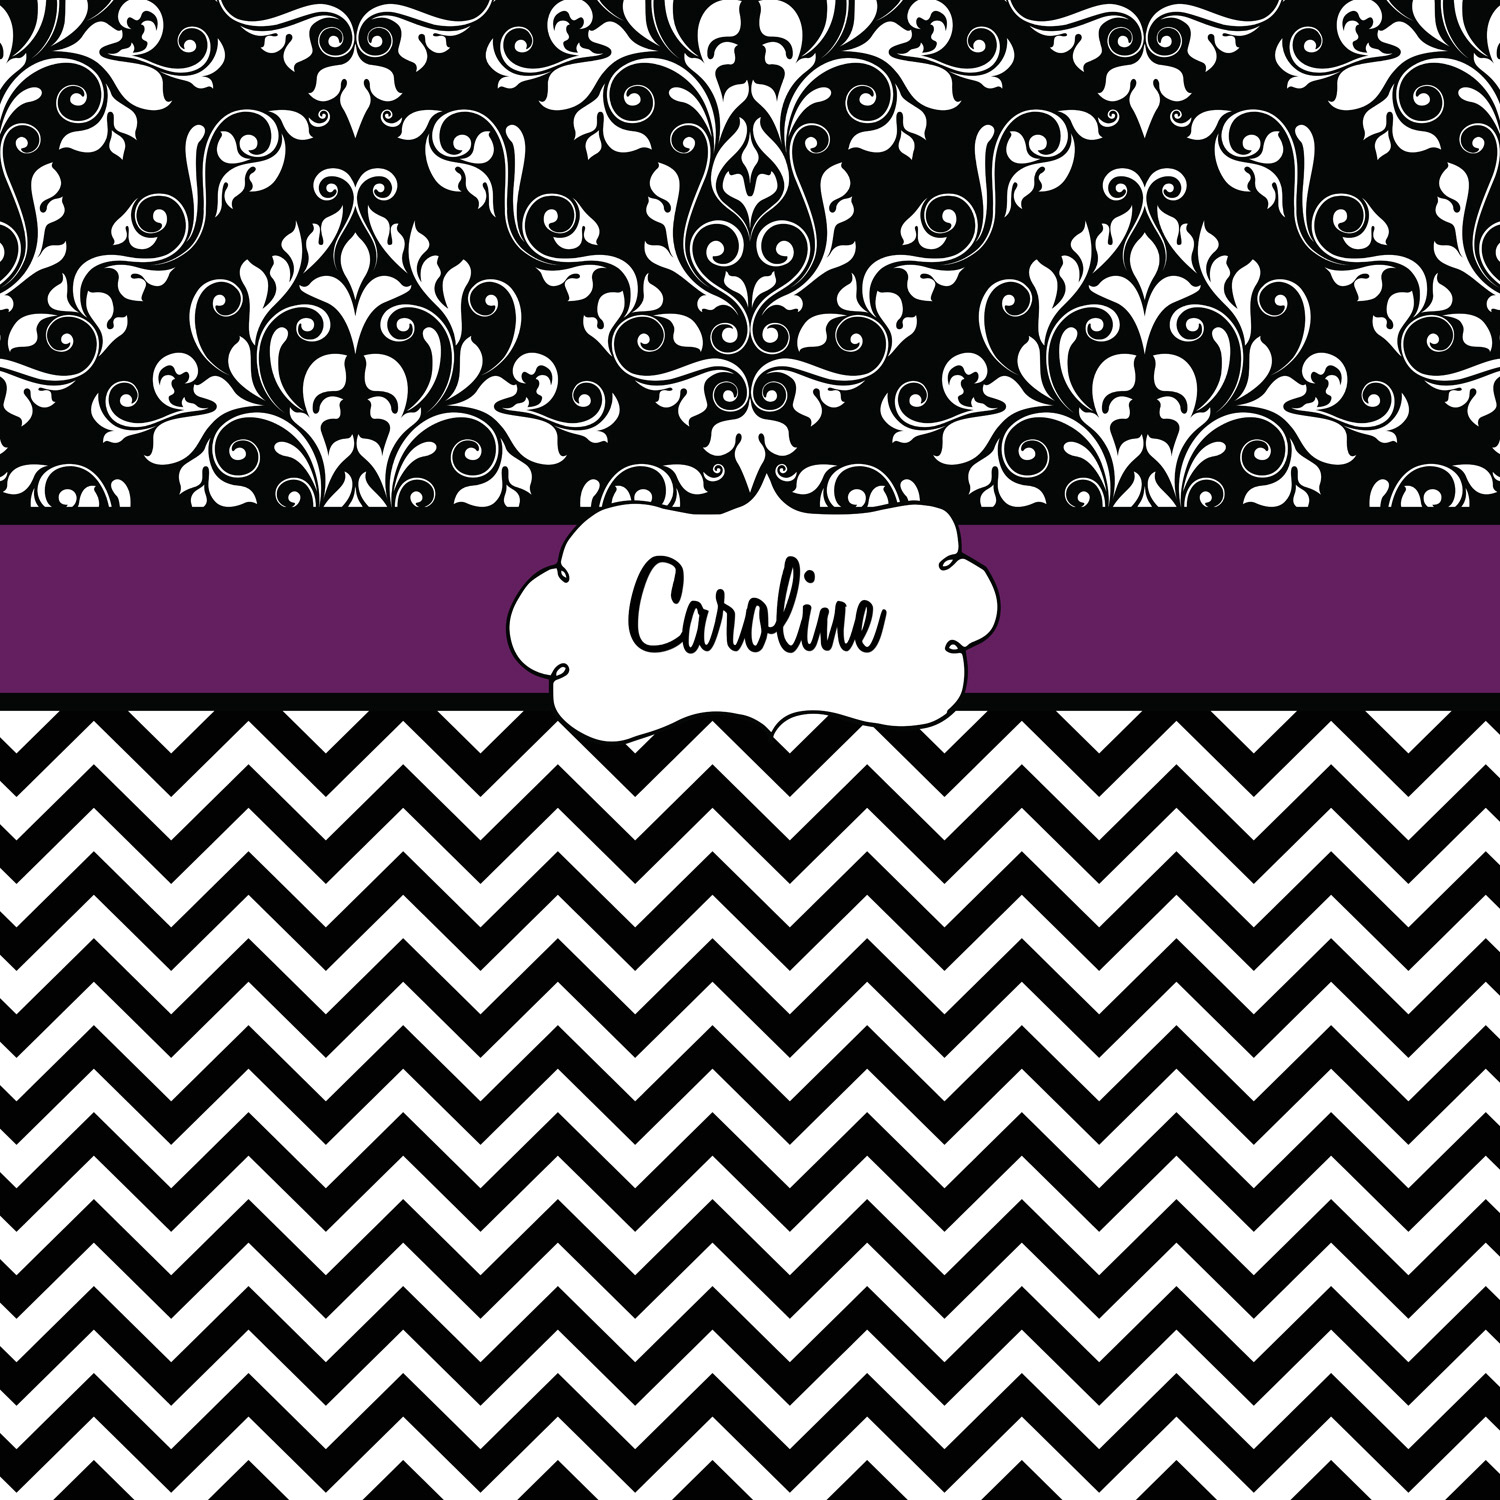 chevron patterned blanket with purple accent